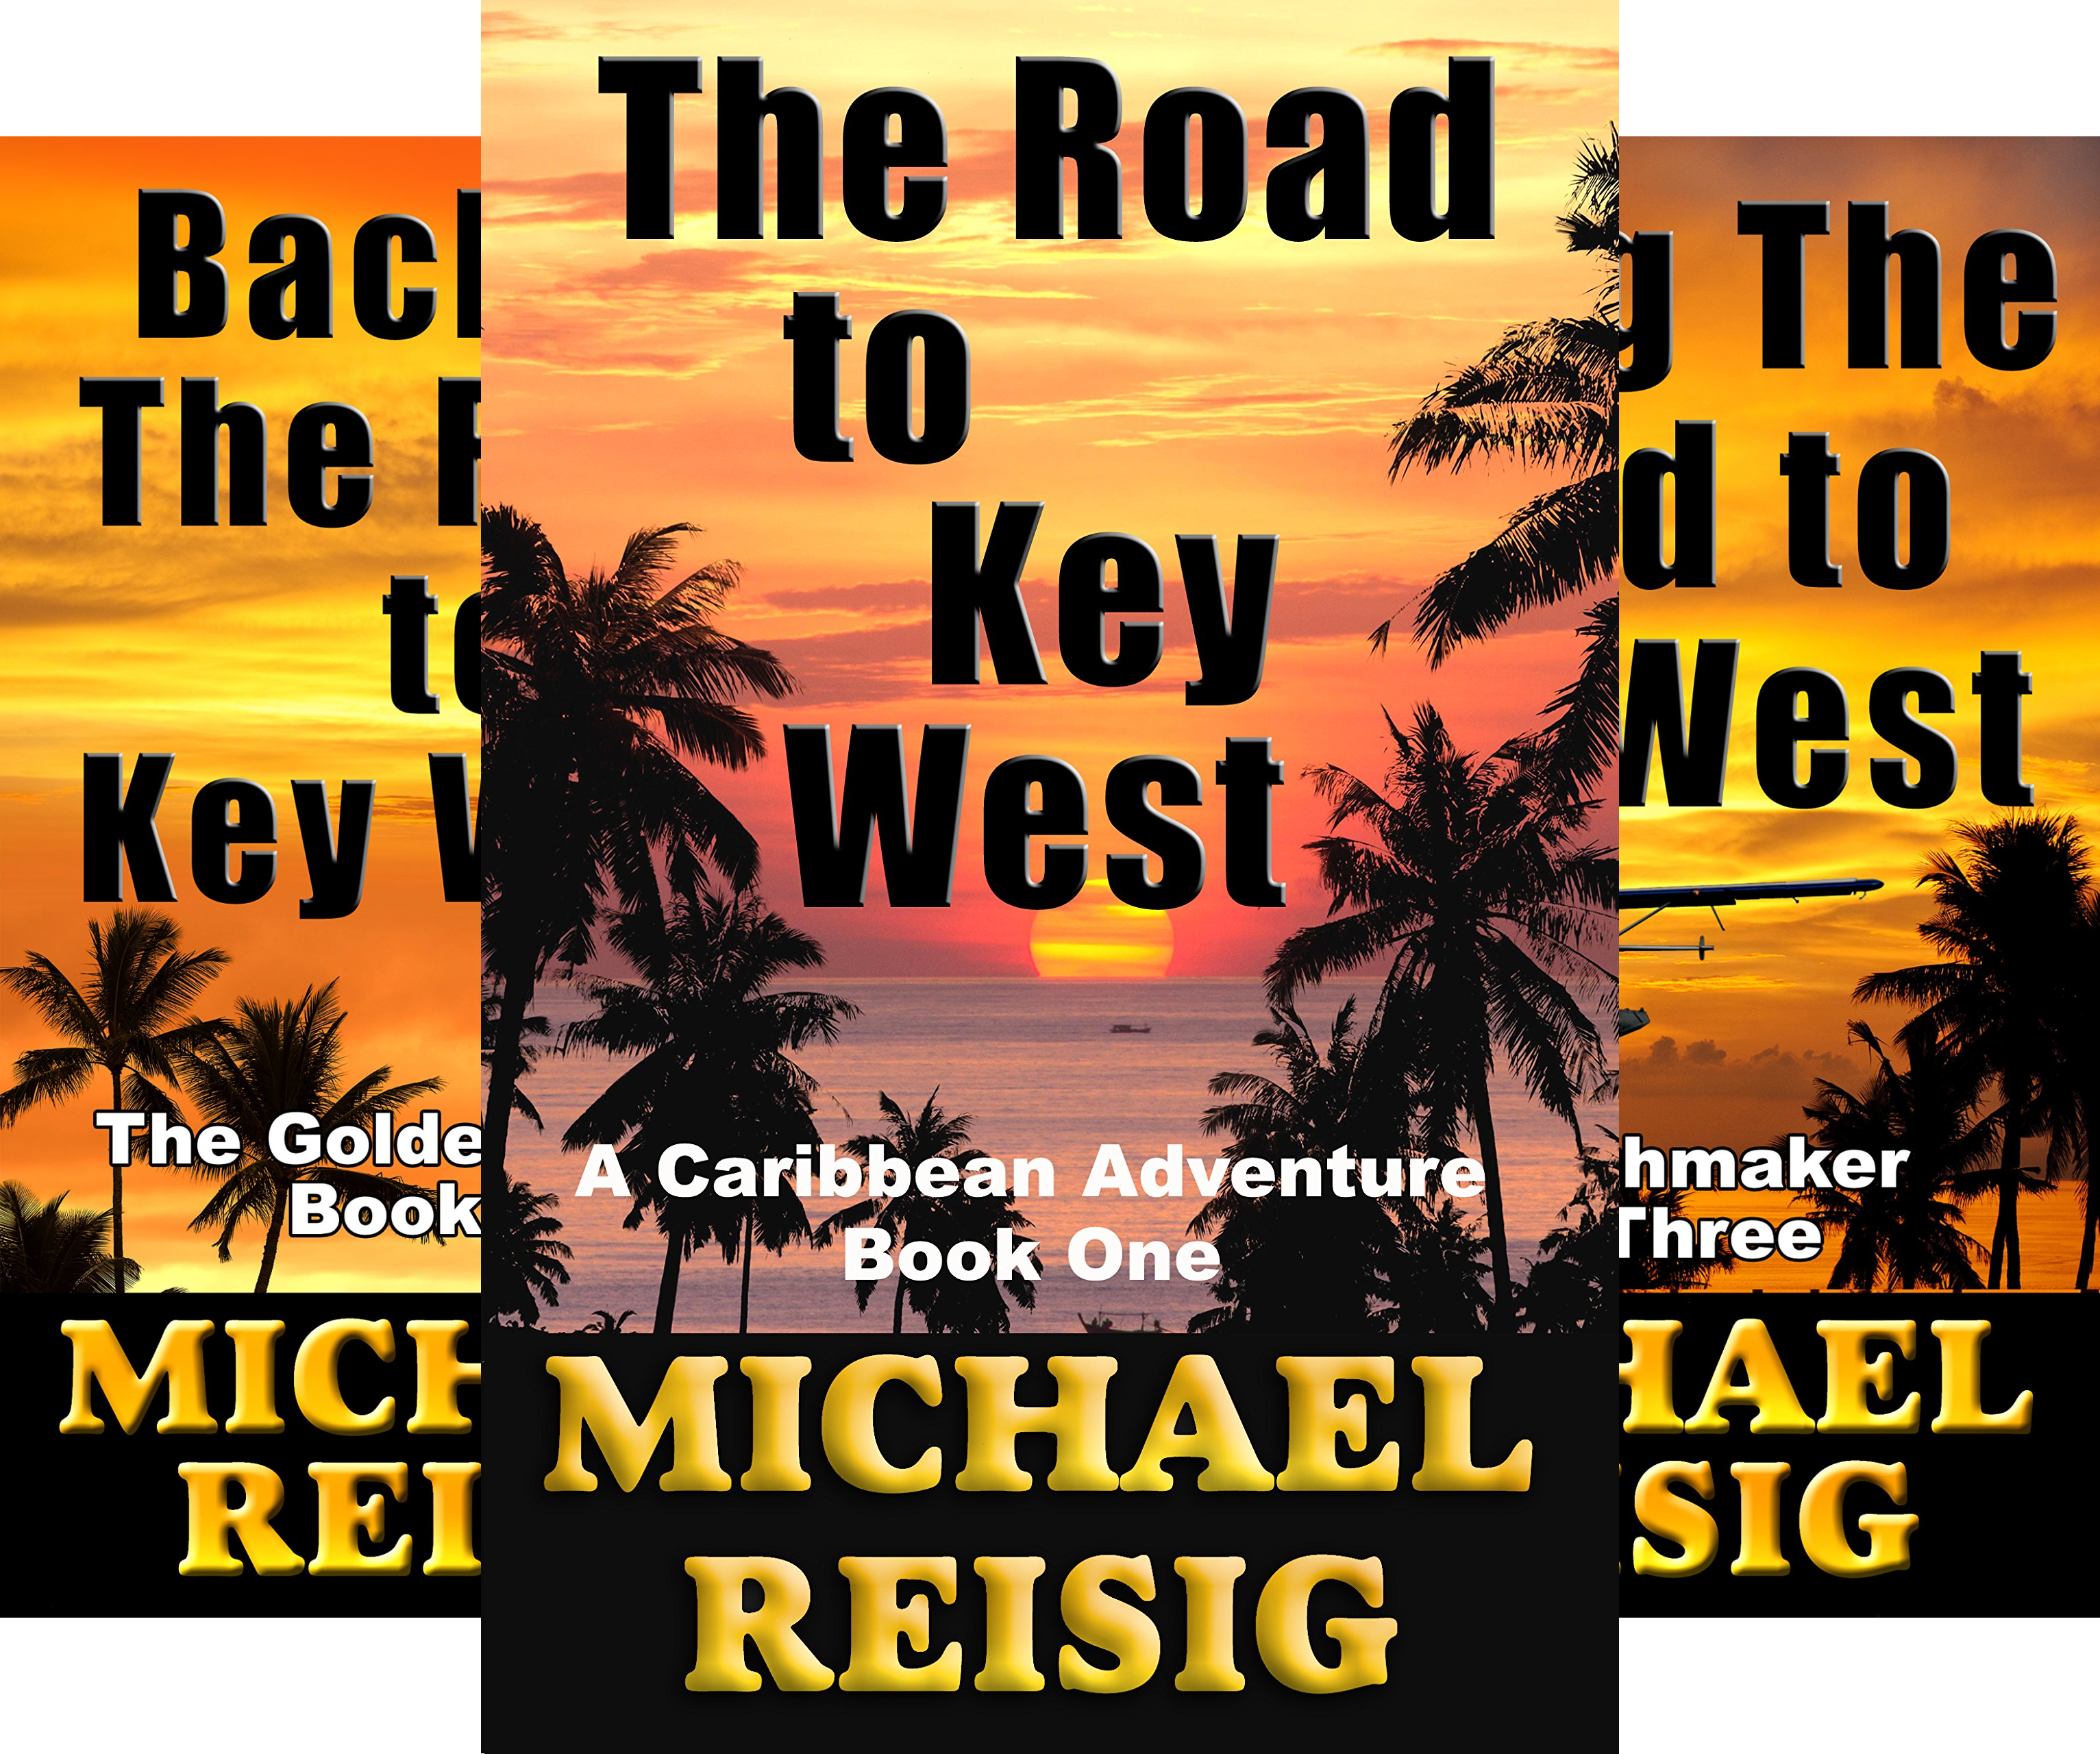 The Road To Key West (7 Book Series)